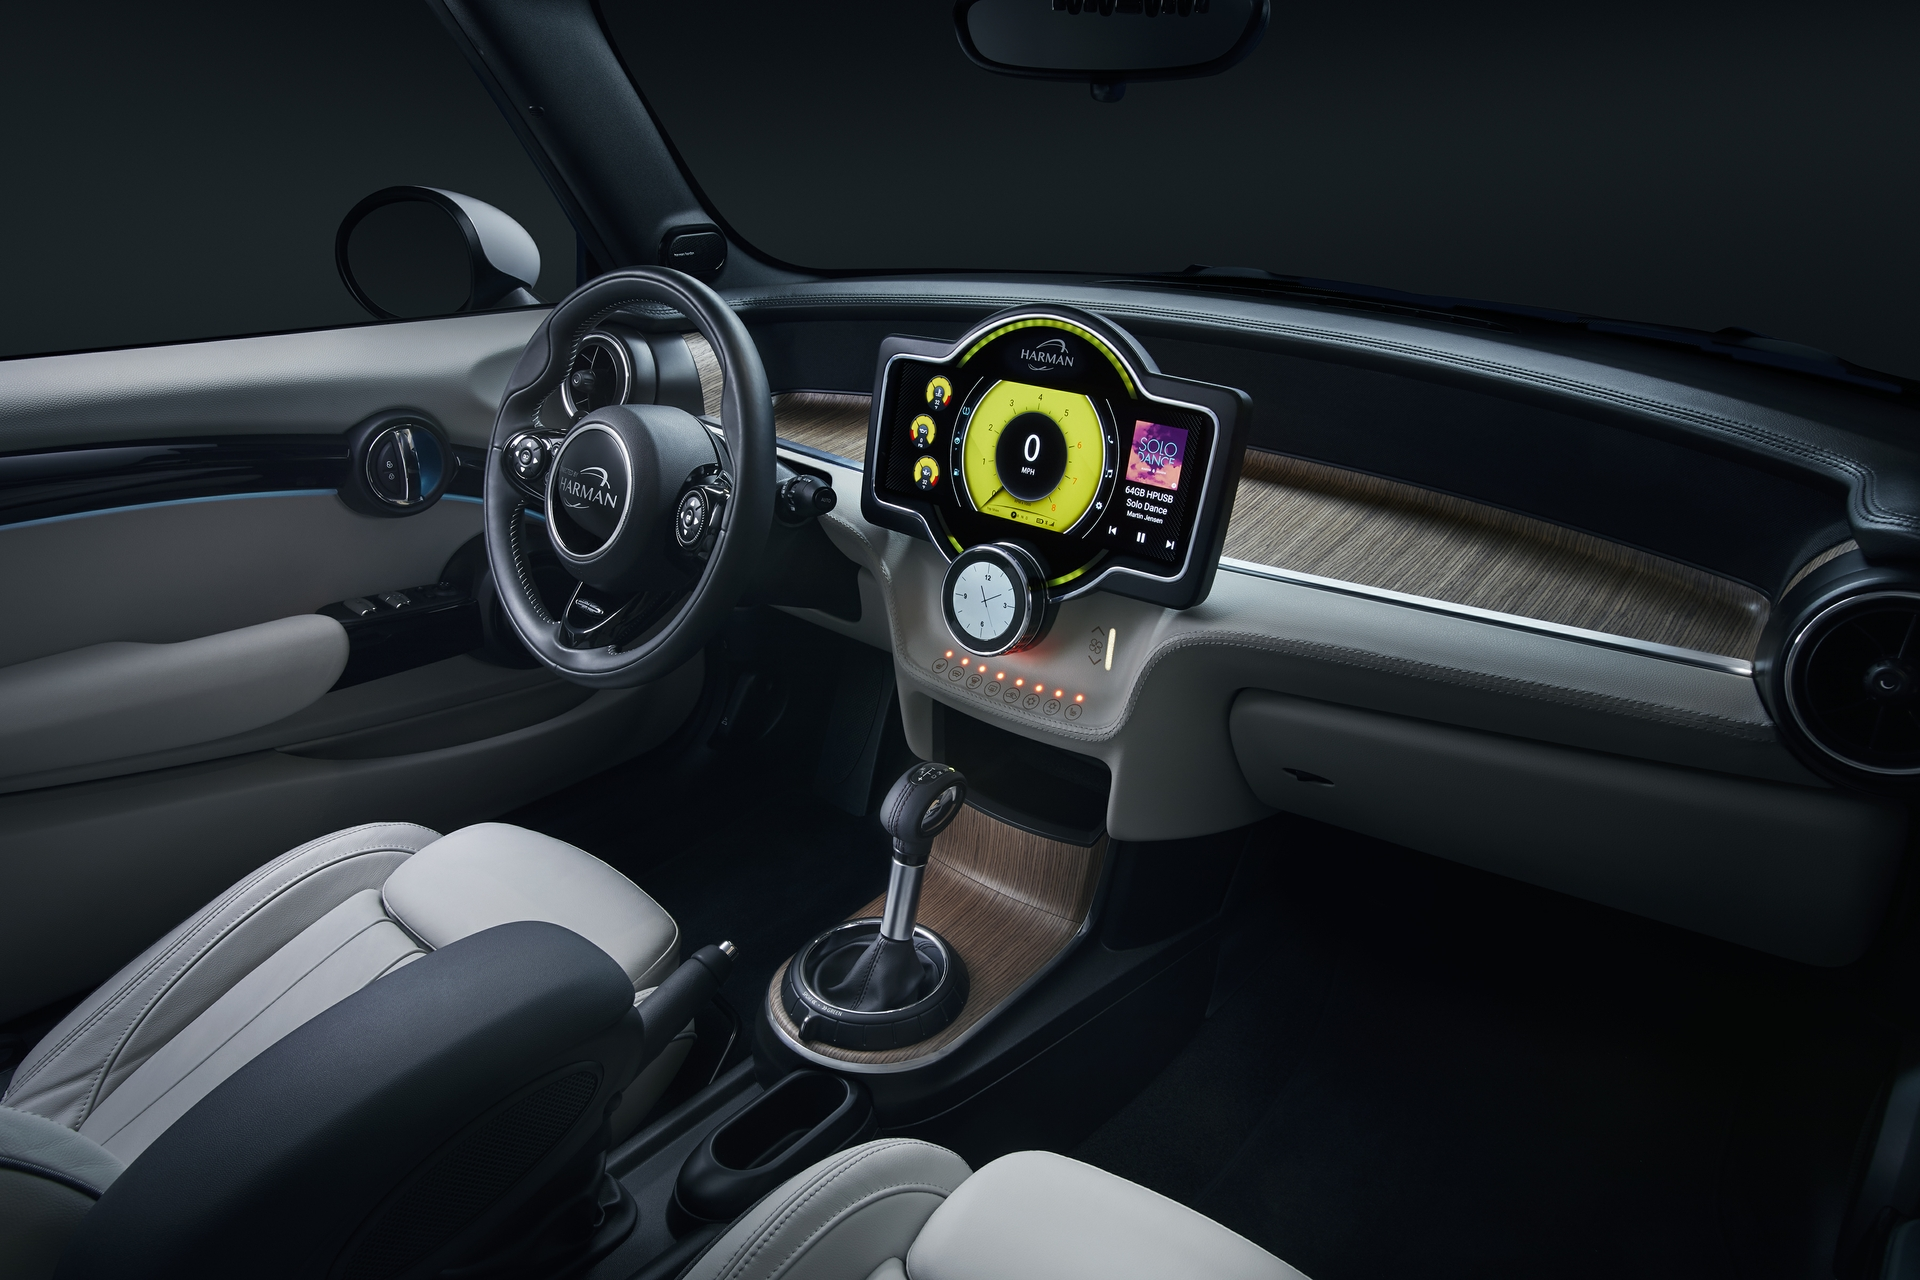 0001_Full_Interior_Dash